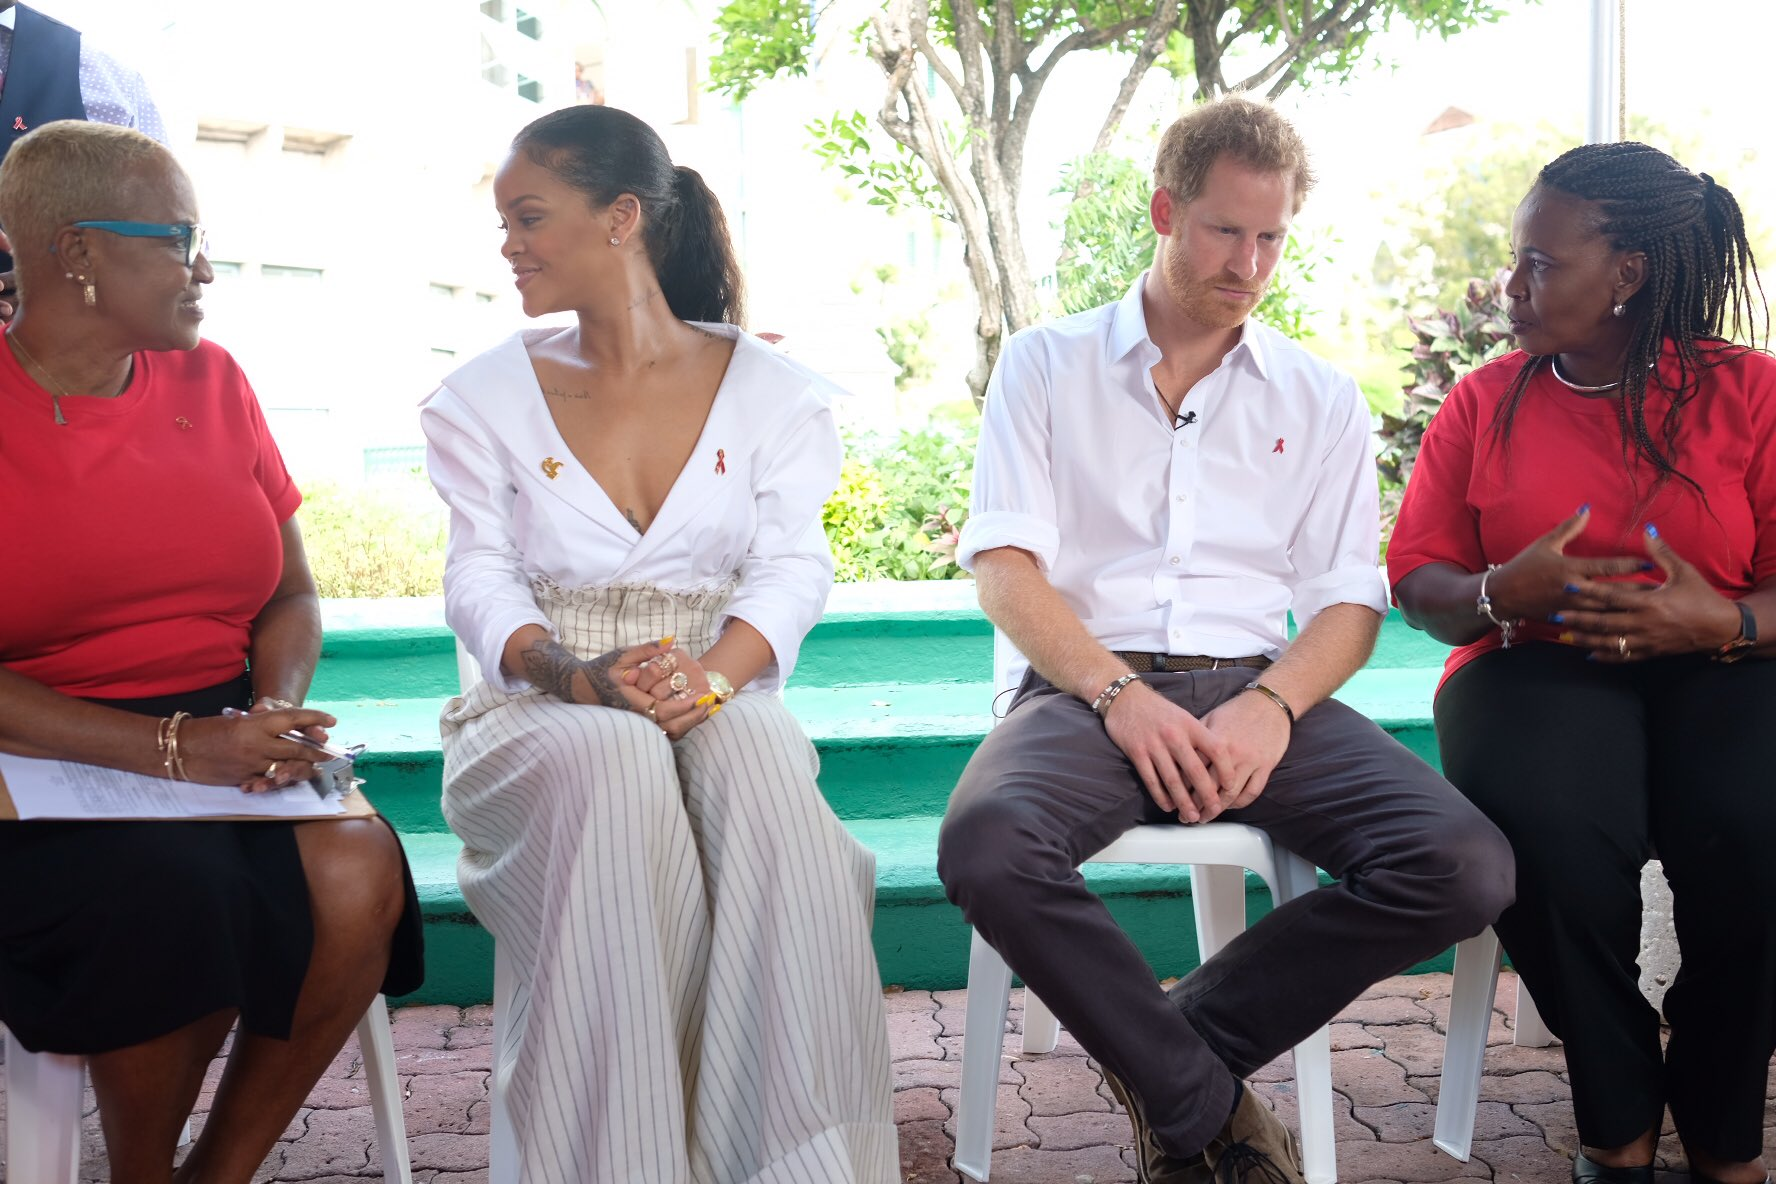 Prince Harry is joined by @Rihanna on #WorldAIDSDay to show how easy it is to be tested for HIV #RoyalVisitBarbados #ProTESTHIV https://t.co/bLEcdmvLKY